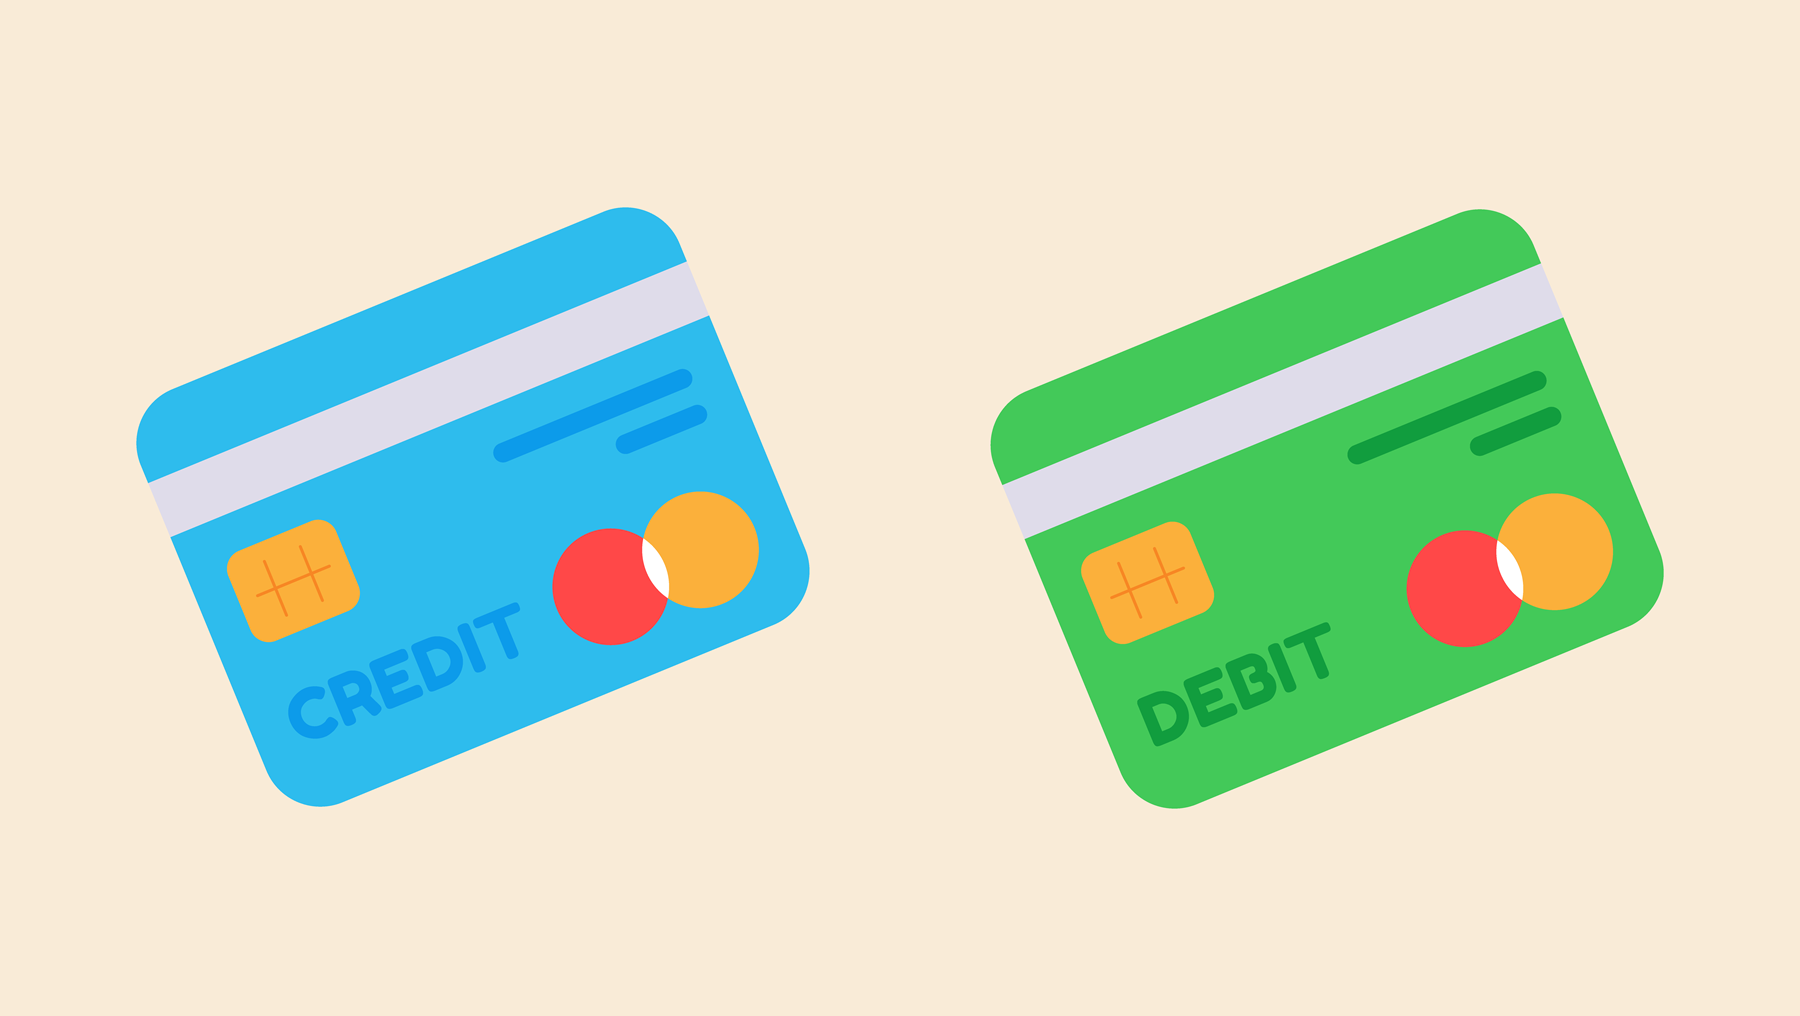 An illustration of a credit and debit card.